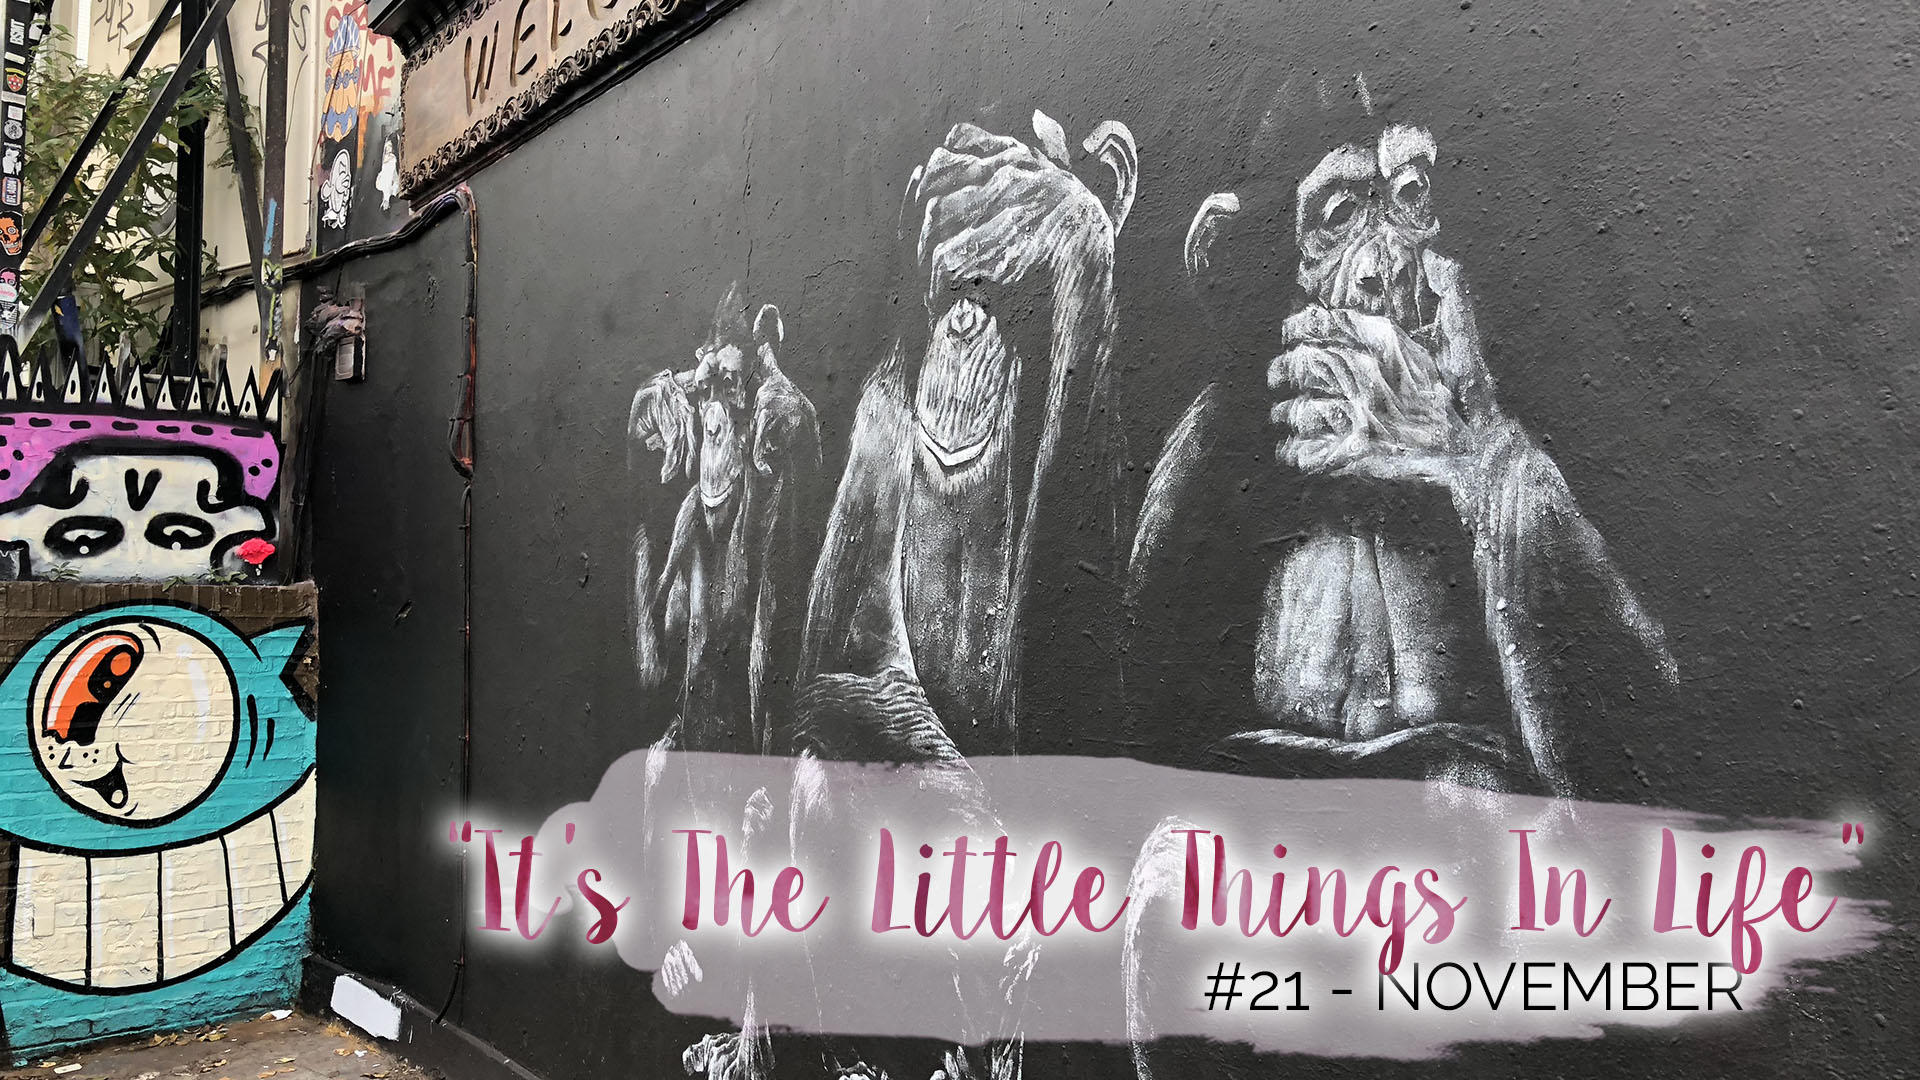 """It's The Little Things In Life"" - 21 - November 